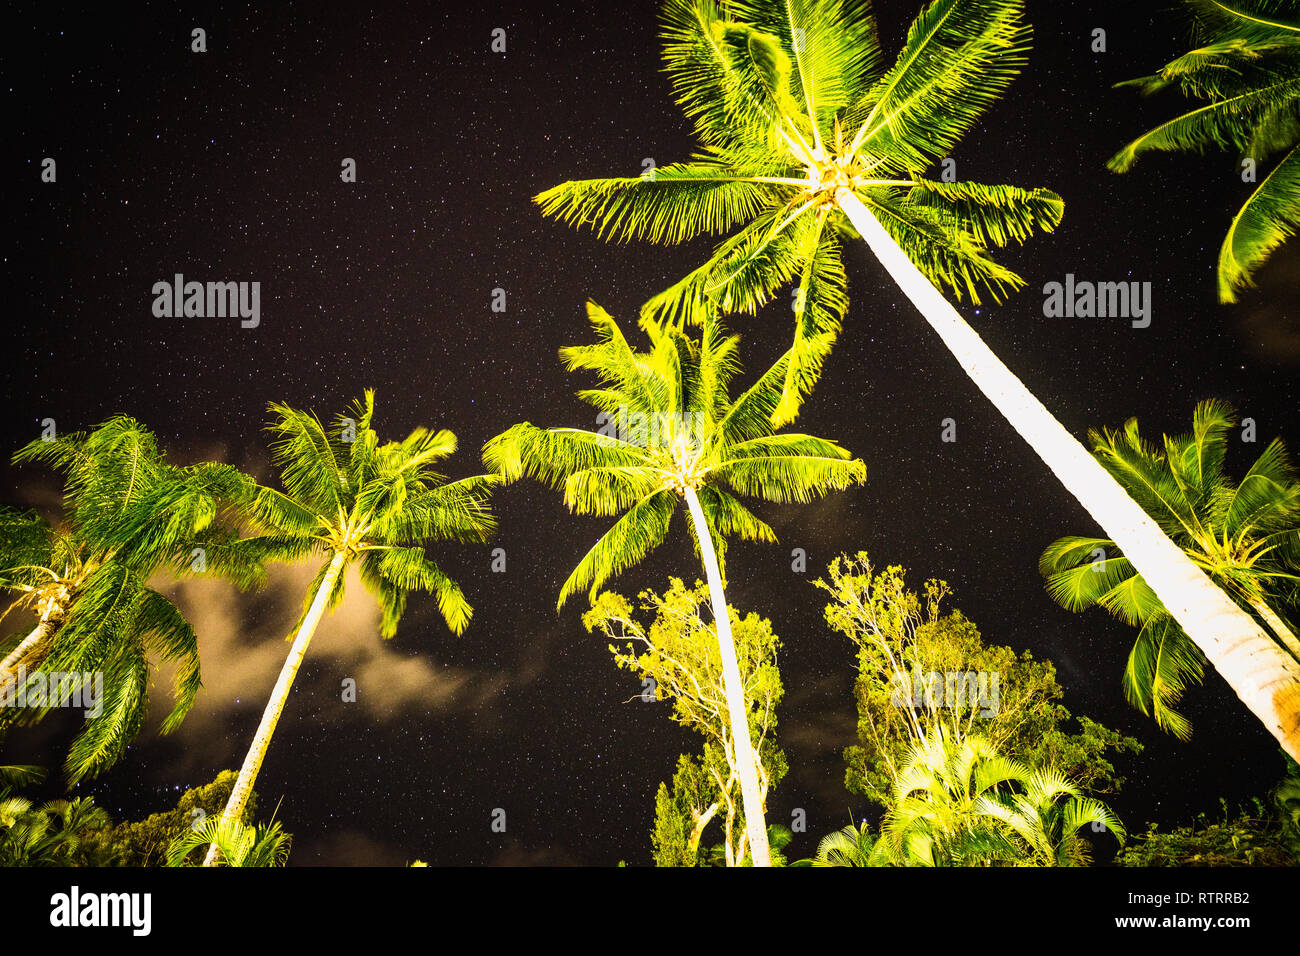 palms under the stars - Stock Image